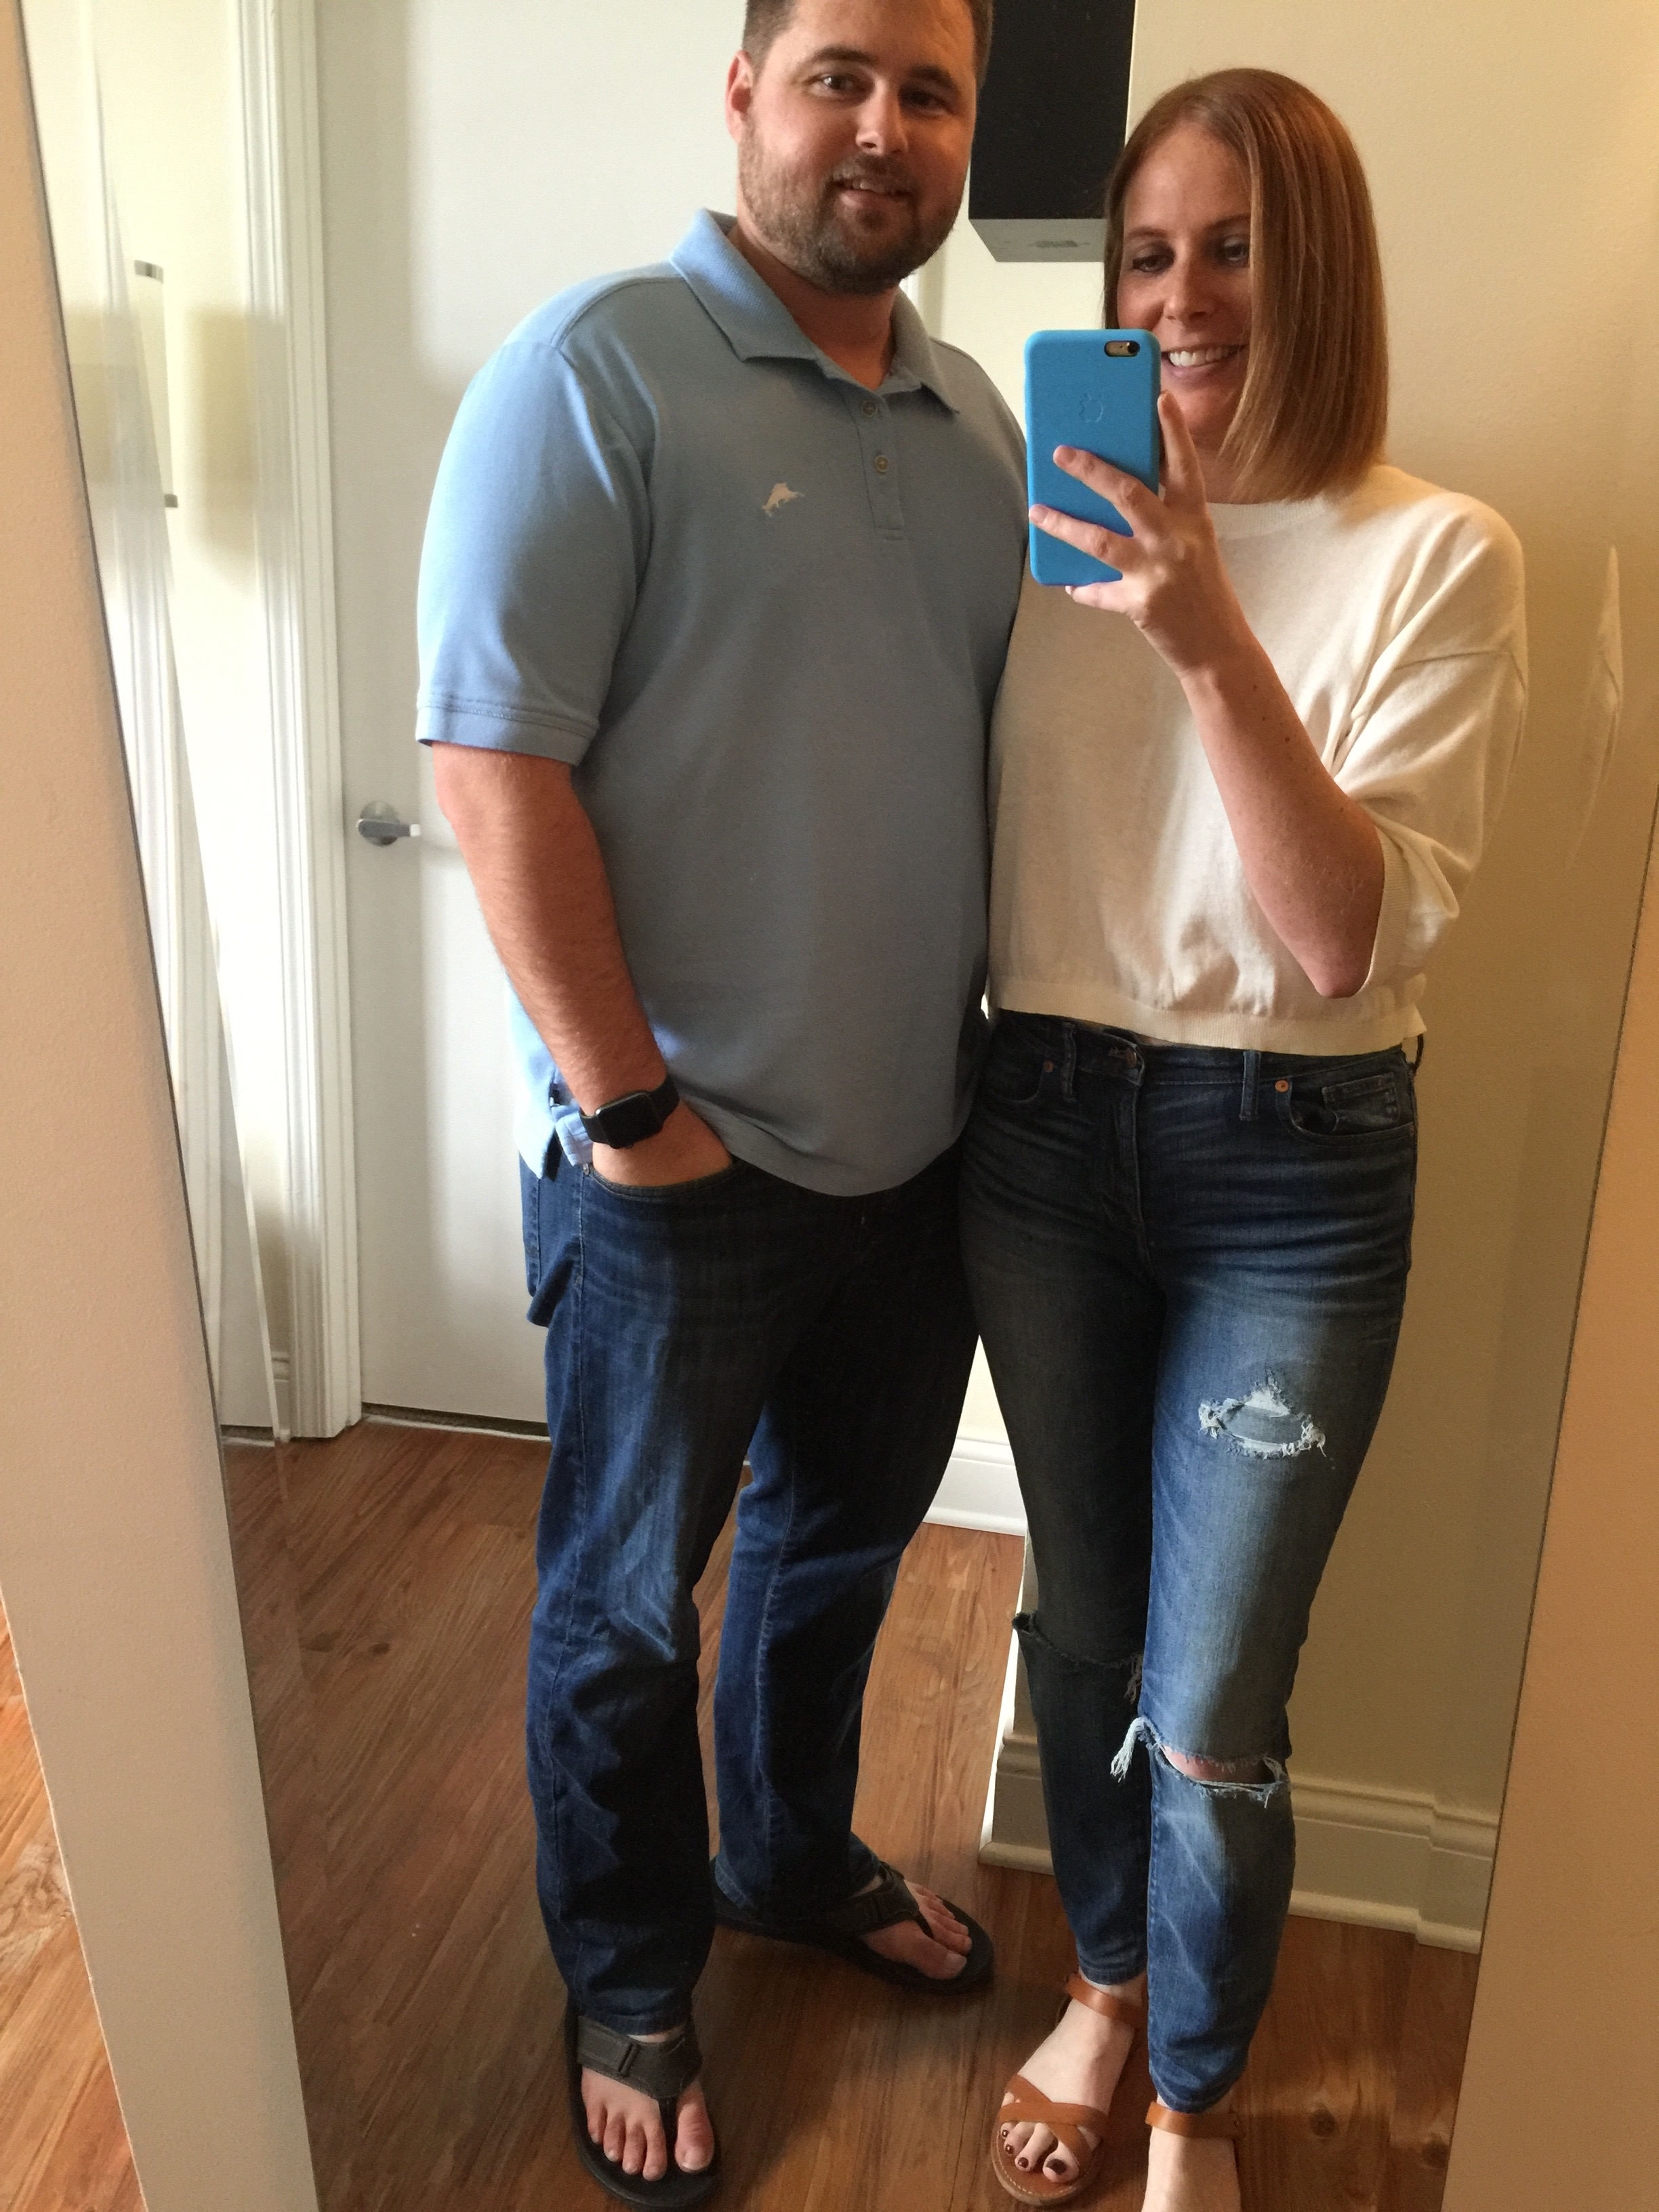 Todd: Shirt: Tommy Bahama, The Emfielder Polo  , Jeans: Nordstrom,  New Hero' Relaxed Fit Jeans , Sandals: Clarks Men's Stoli Sandal in Olive Jenn: Shirt, Gap: Crop sweater top ,Jeans: Madewell, High Riser Skinny , Sandals, Madewell